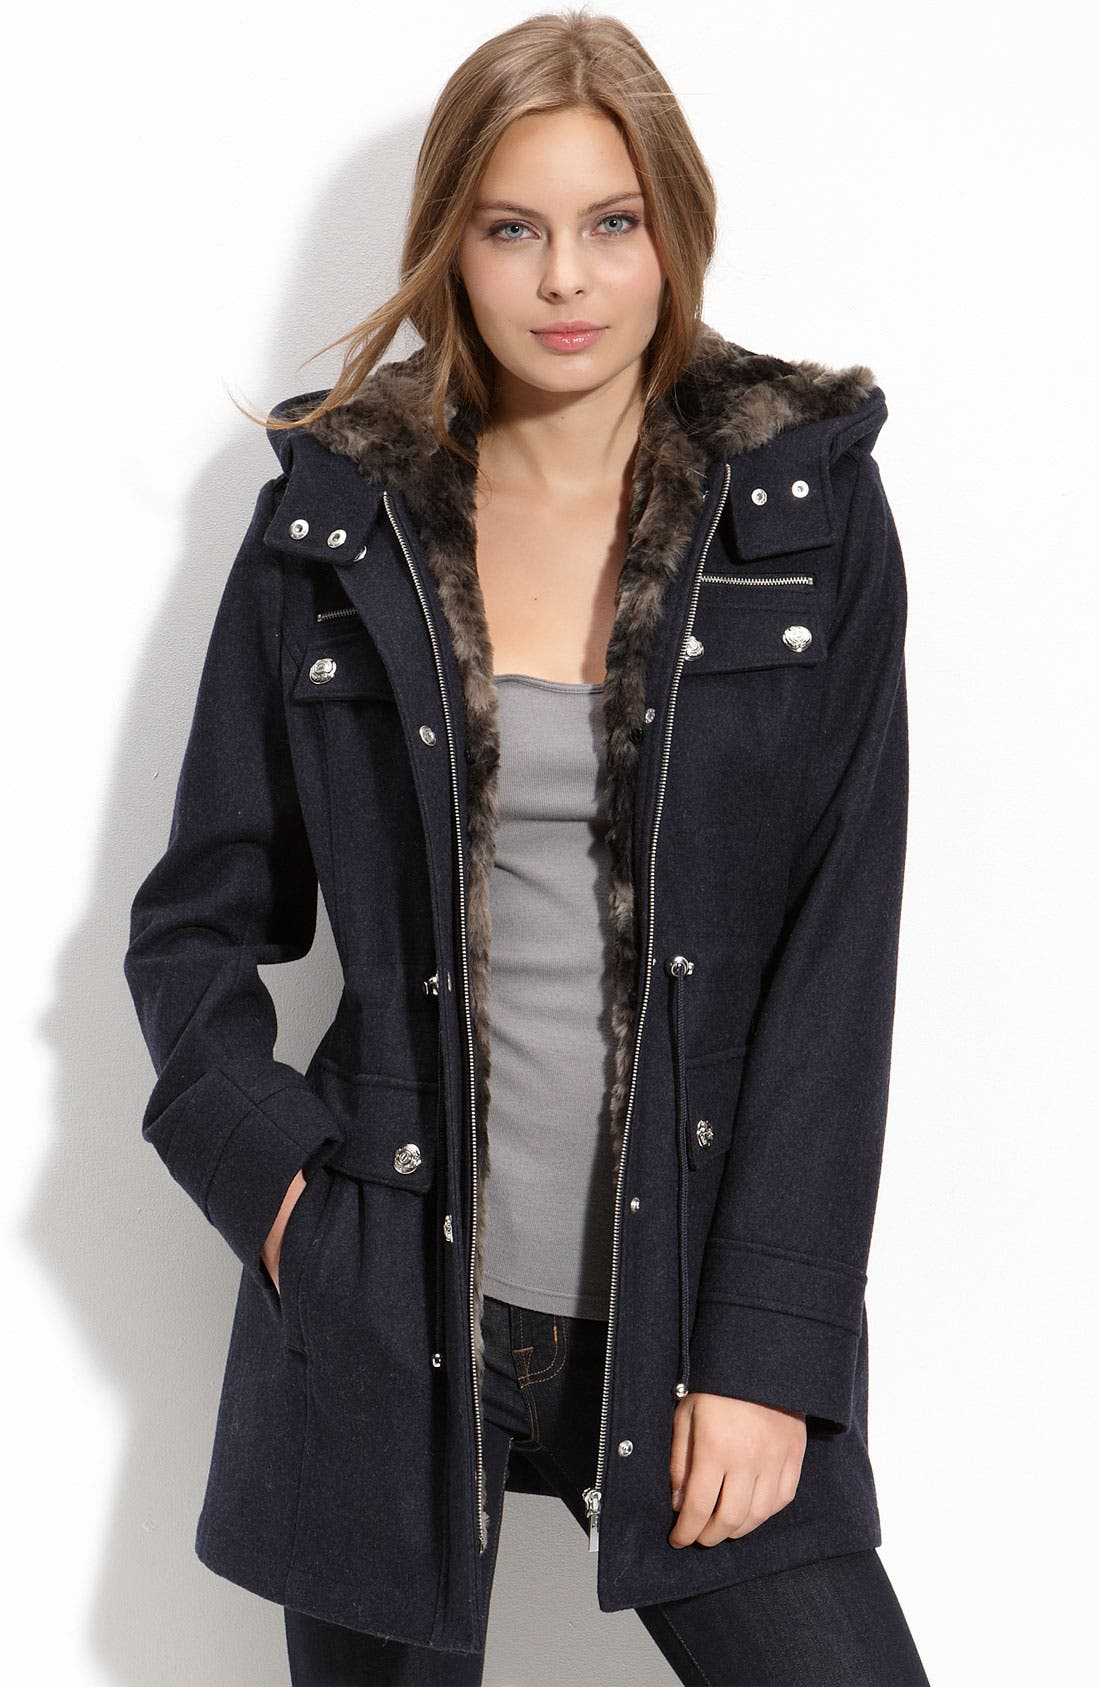 Alternate Image 1 Selected - Laundry by Shelli Segal Wool Blend Anorak with Faux Fur Trim